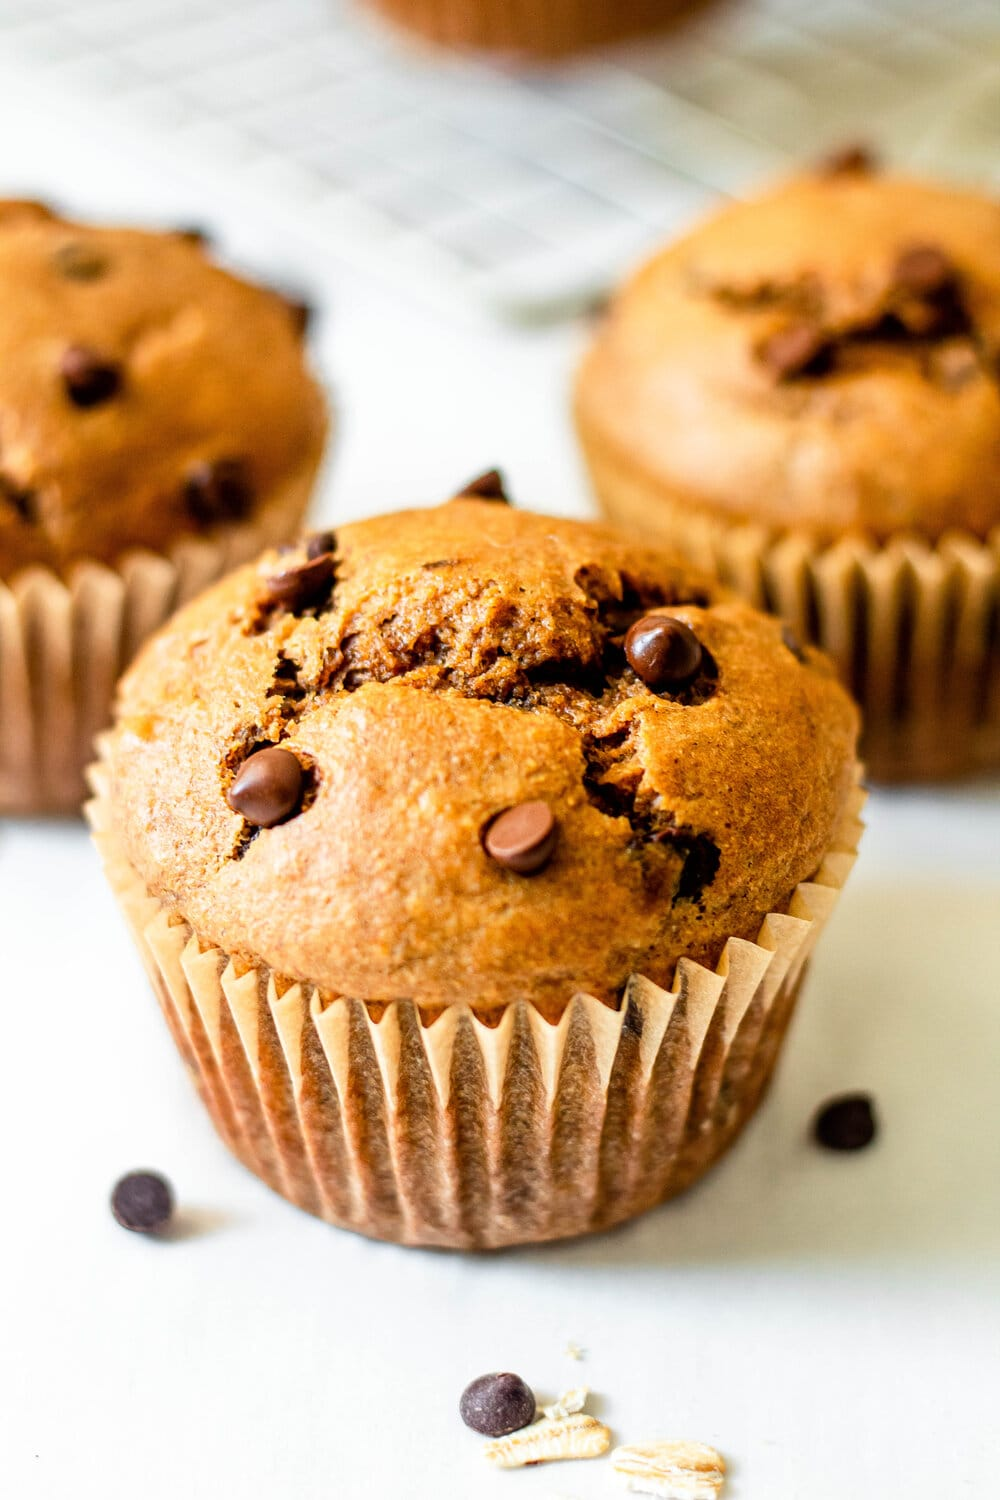 Healthy Peanut Butter Banana Oat Muffins_side view.jpg